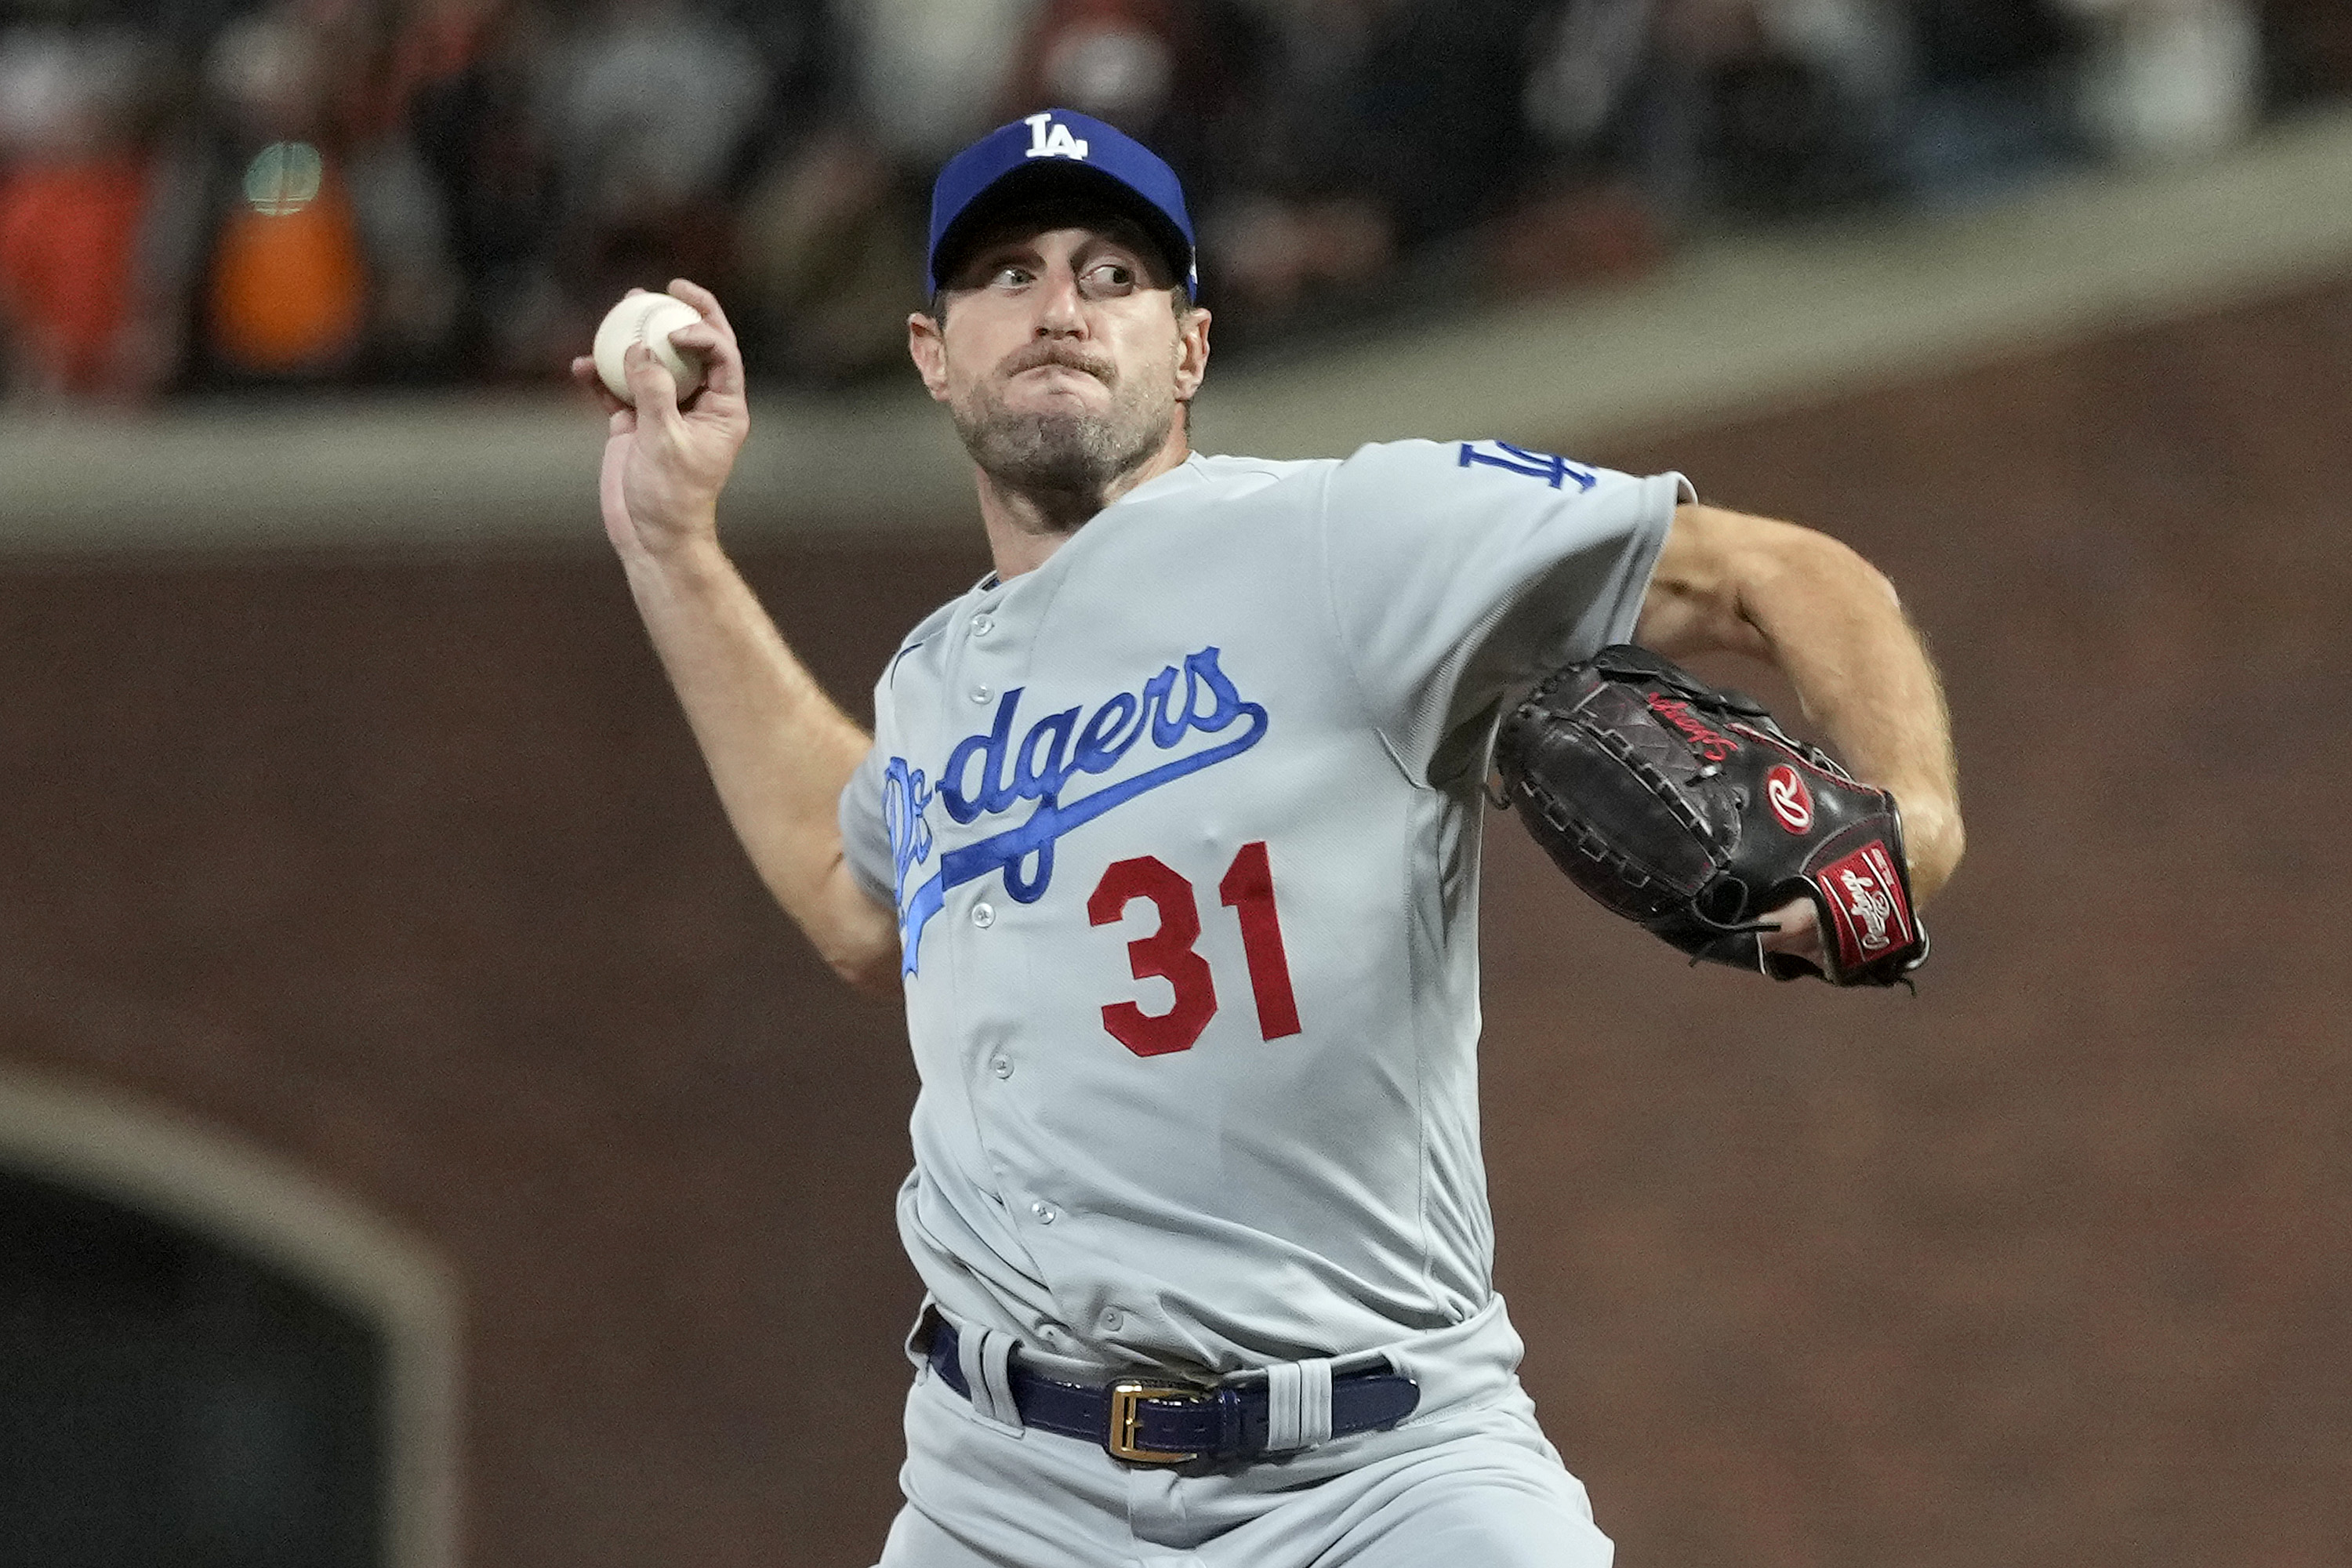 Max Scherzer #31 of the Los Angeles Dodgers pitches against the San Francisco Giants during the ninth inning in game 5 of the National League Division Series at Oracle Park on October 14, 2021 in San Francisco, California.